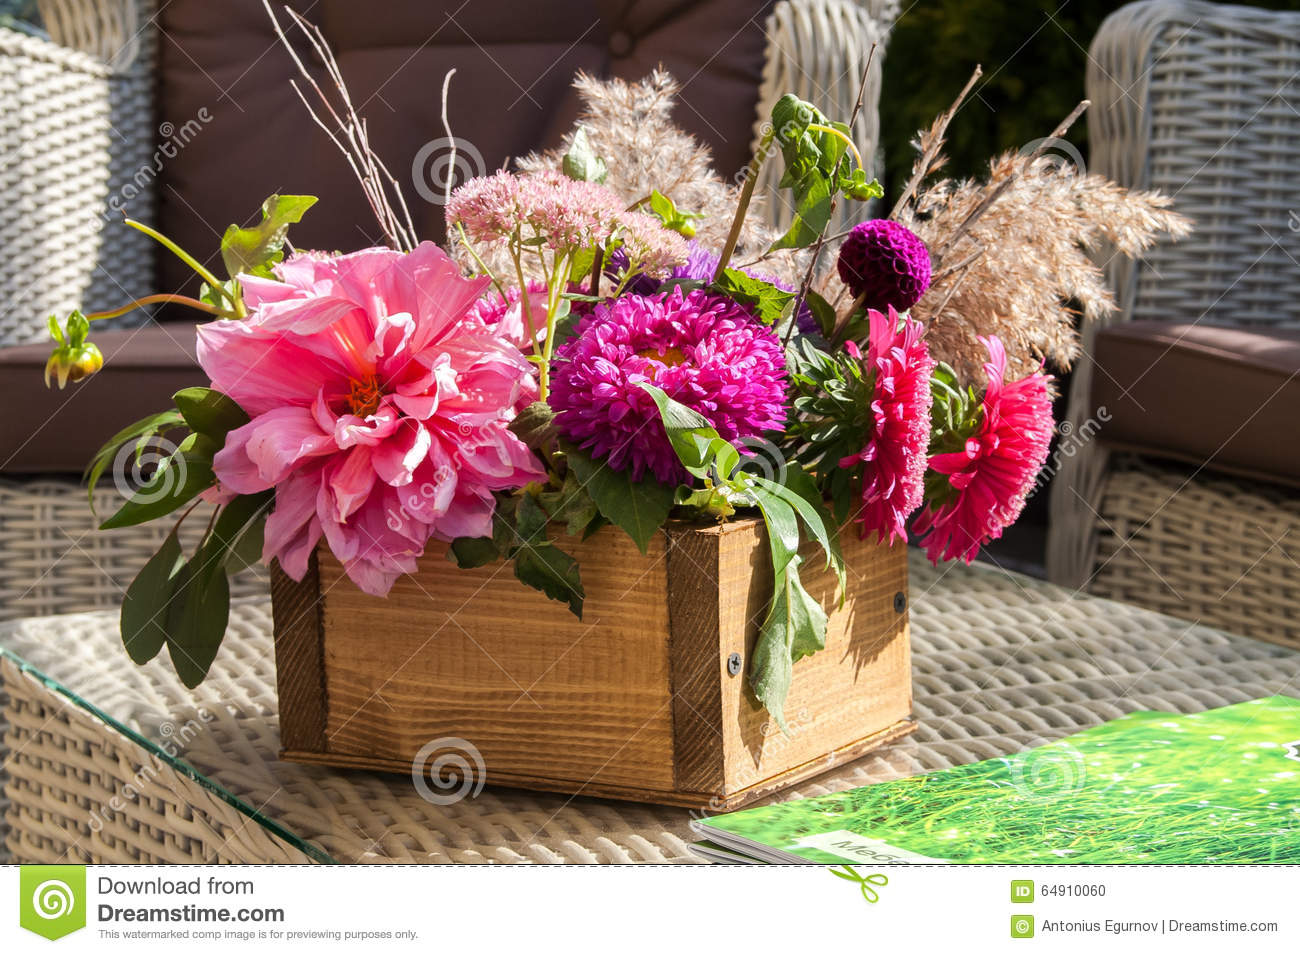 A bouquet of different flowers in a wooden box stock photo image download comp izmirmasajfo